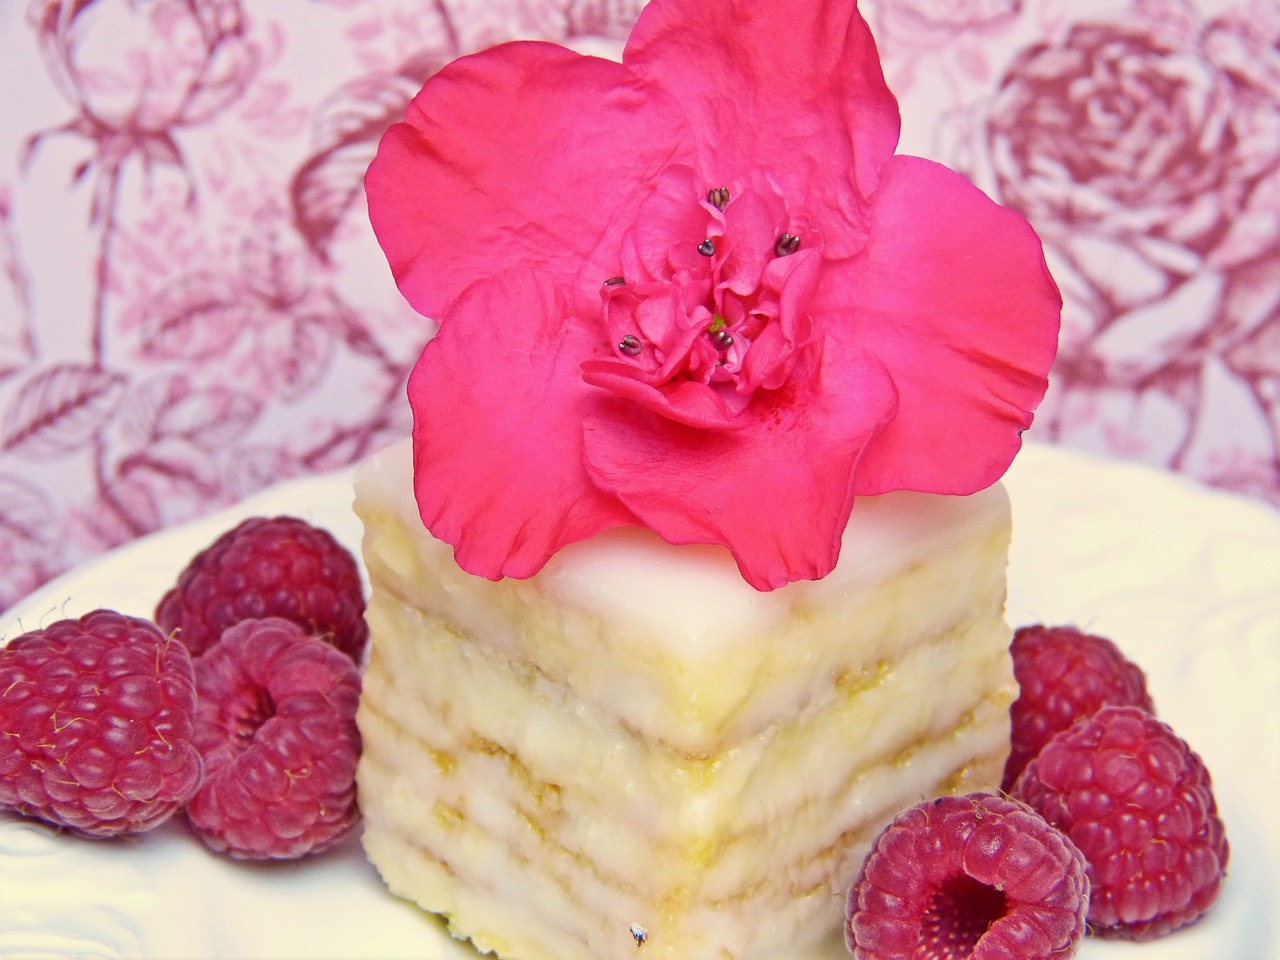 Gluten free cake with red raspberries.